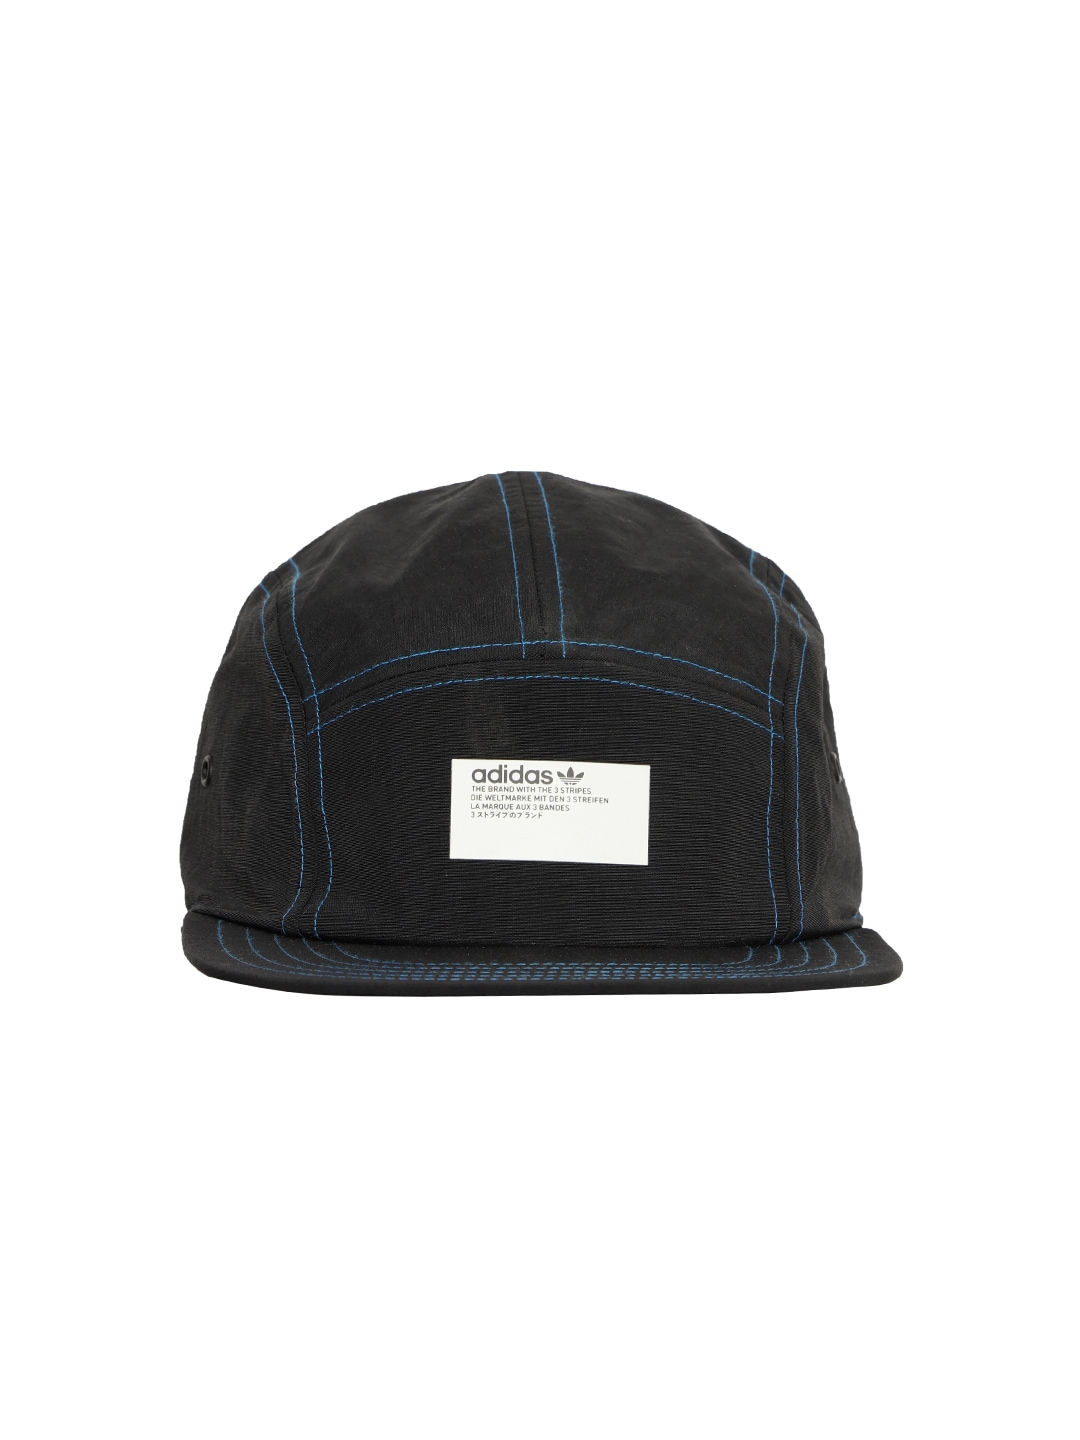 427029dc78e Adidas Men Nba Caps - Buy Adidas Men Nba Caps online in India